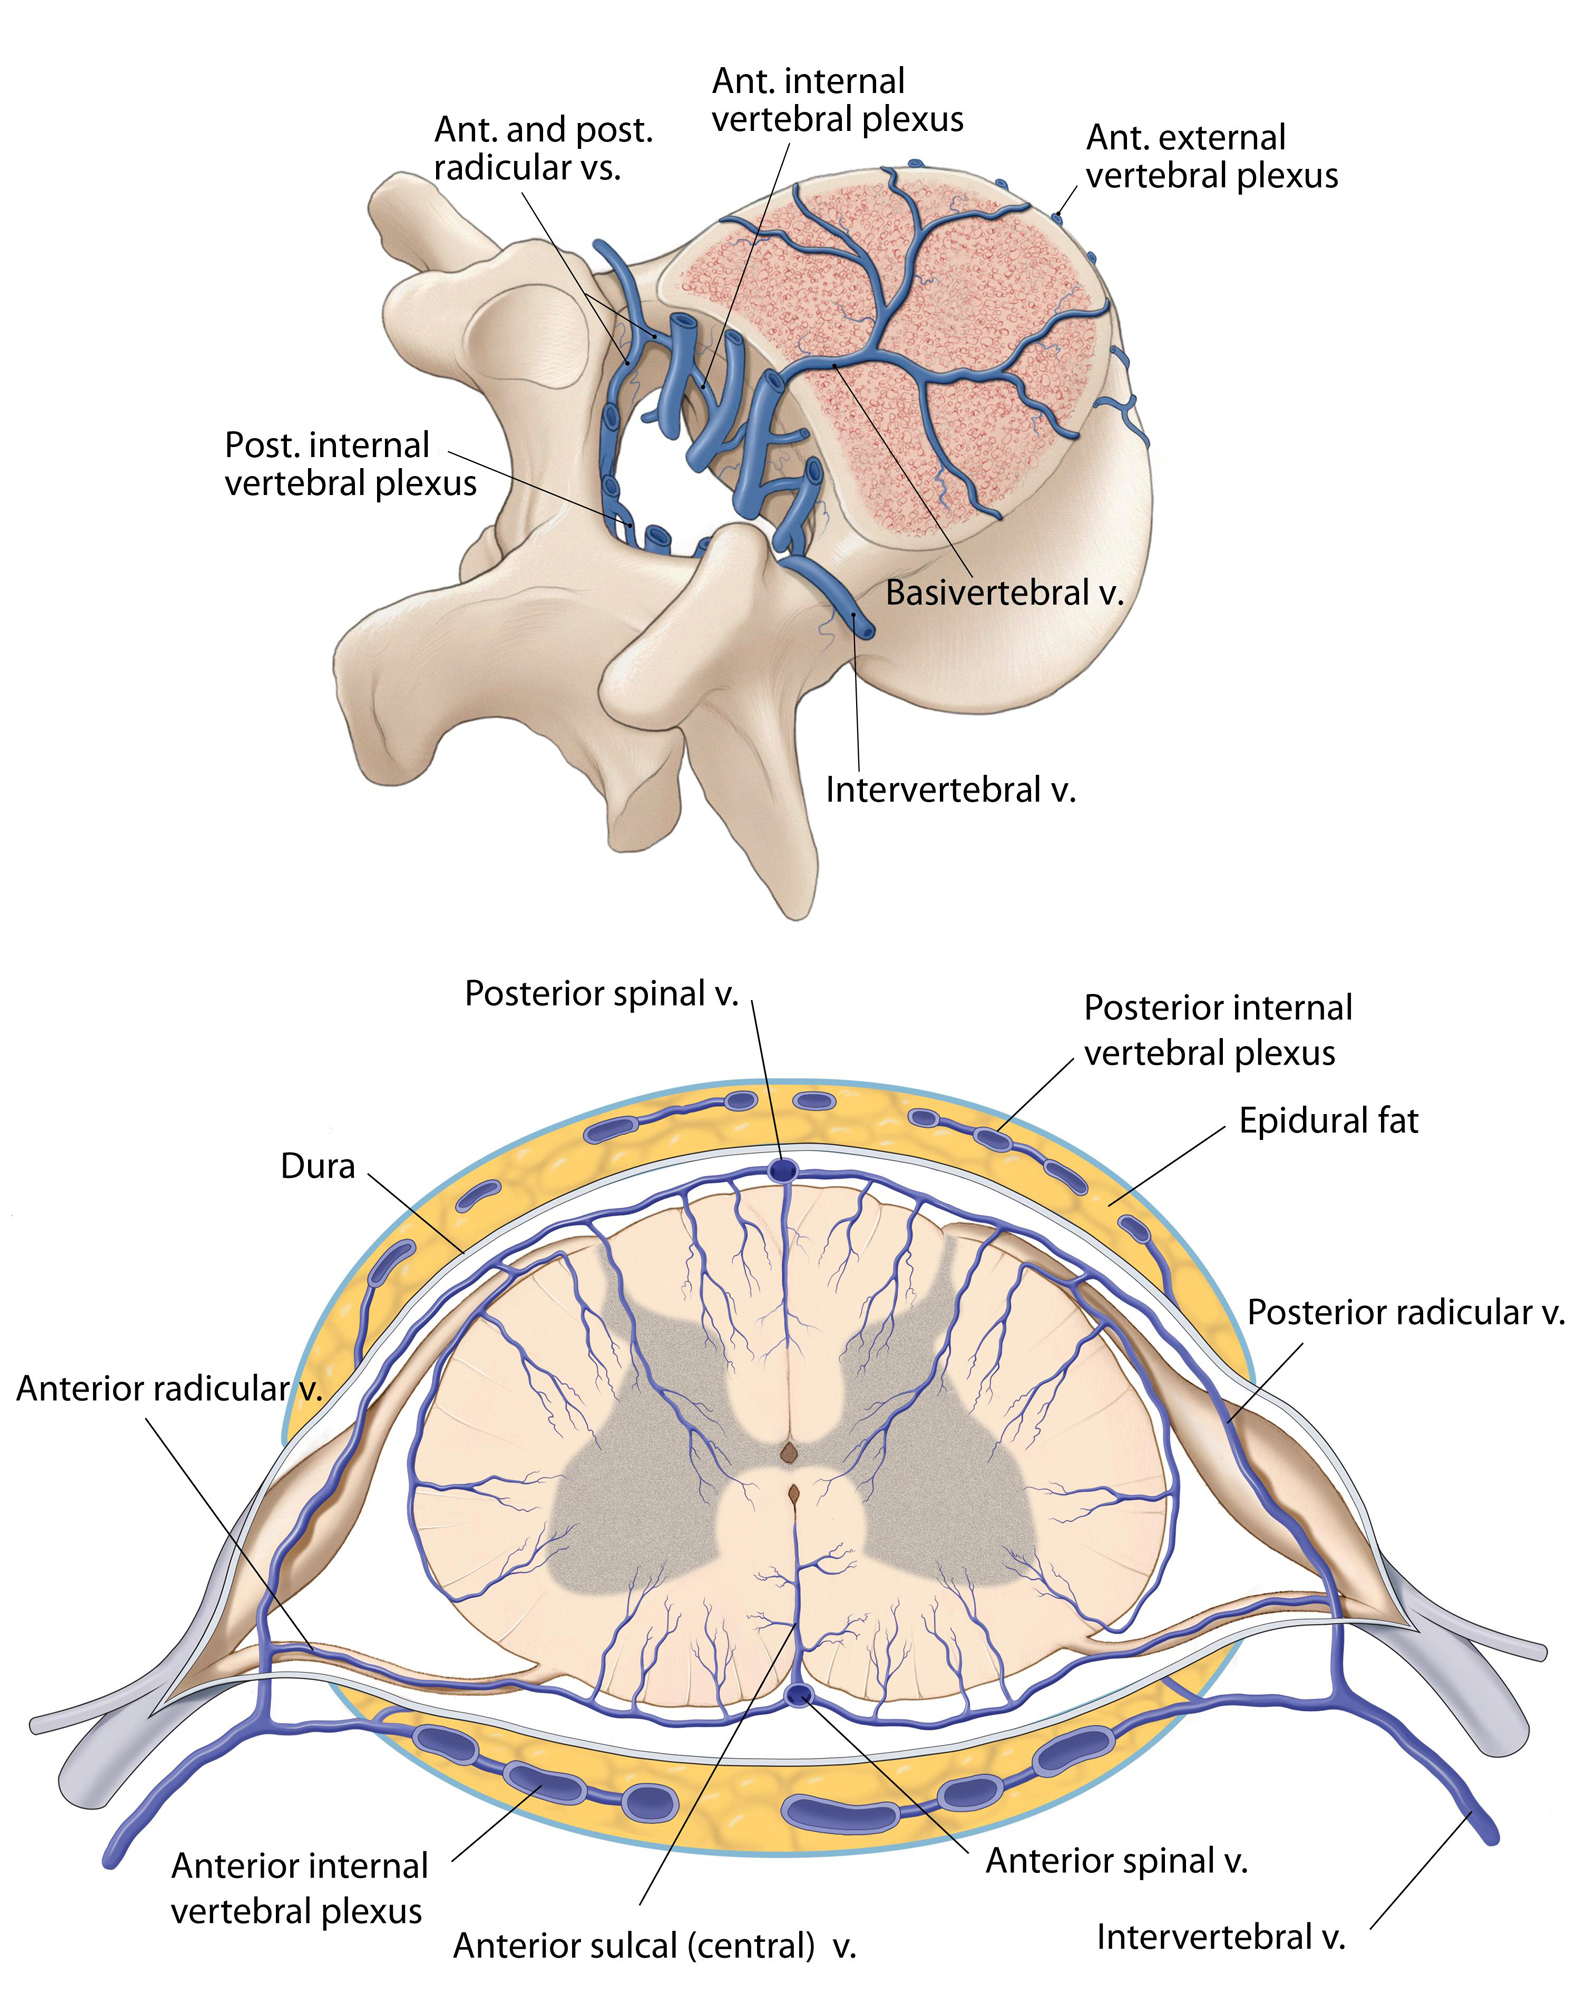 Figure 12: Diagram of the spinal cord venous anatomy from a cross-sectional perspective.